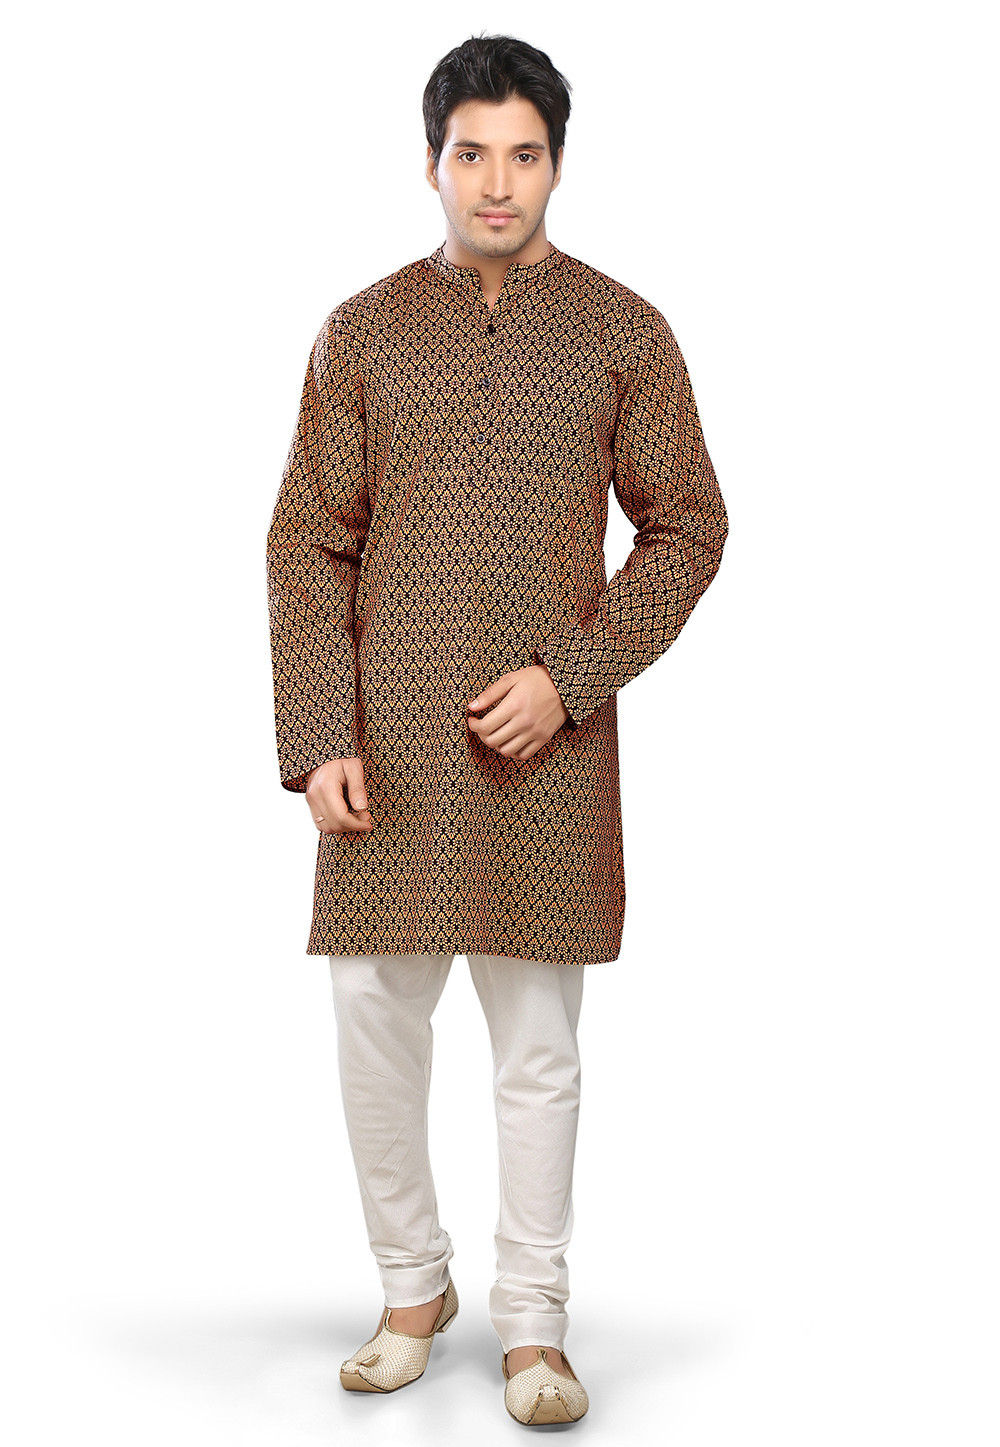 Printed Cotton Kurta Churidar in Beige and Black